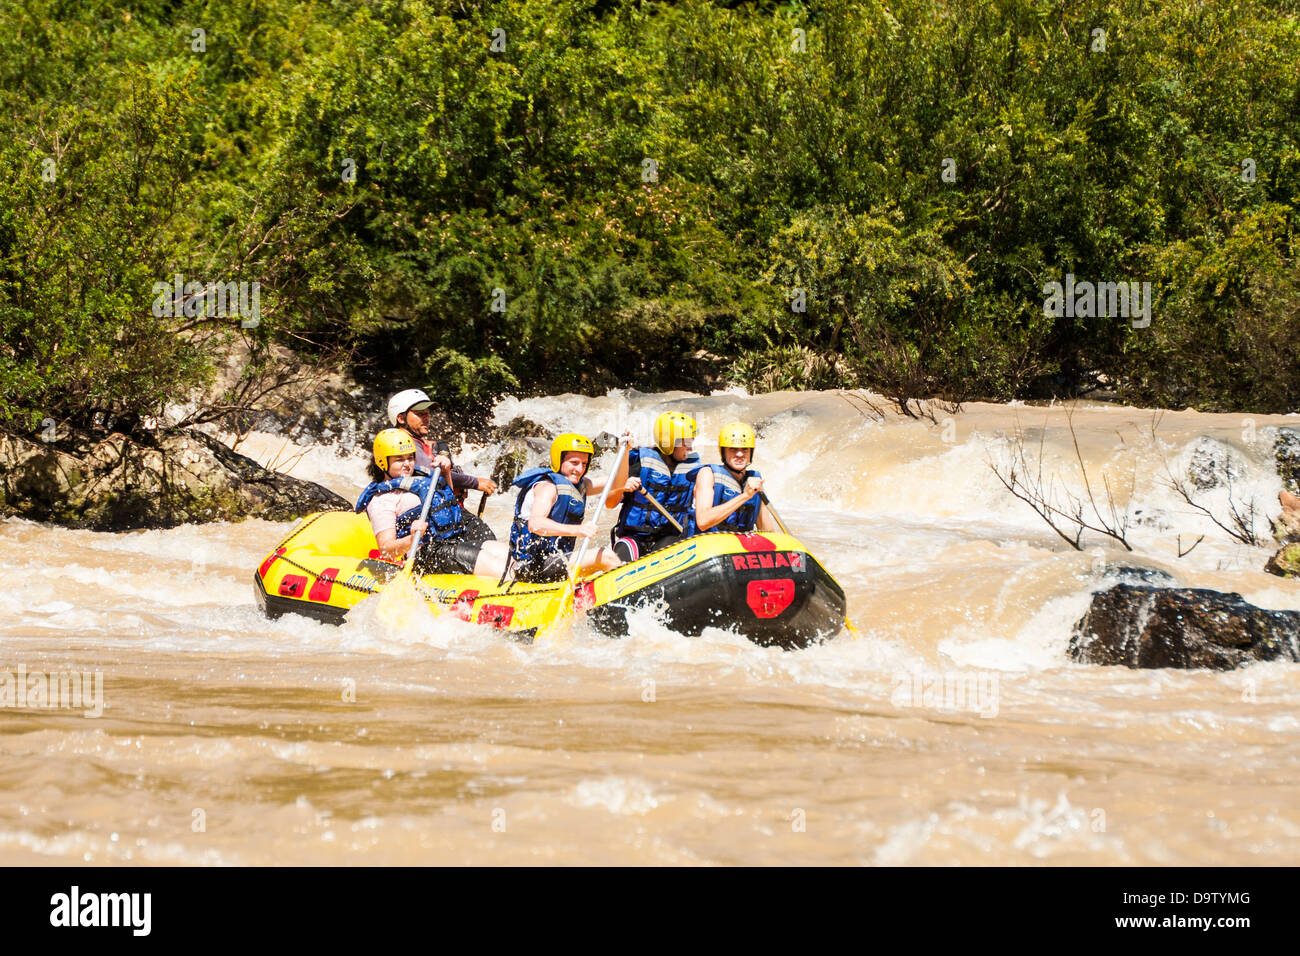 Rafting at Itajai Acu River, in southern Brazil. - Stock Image